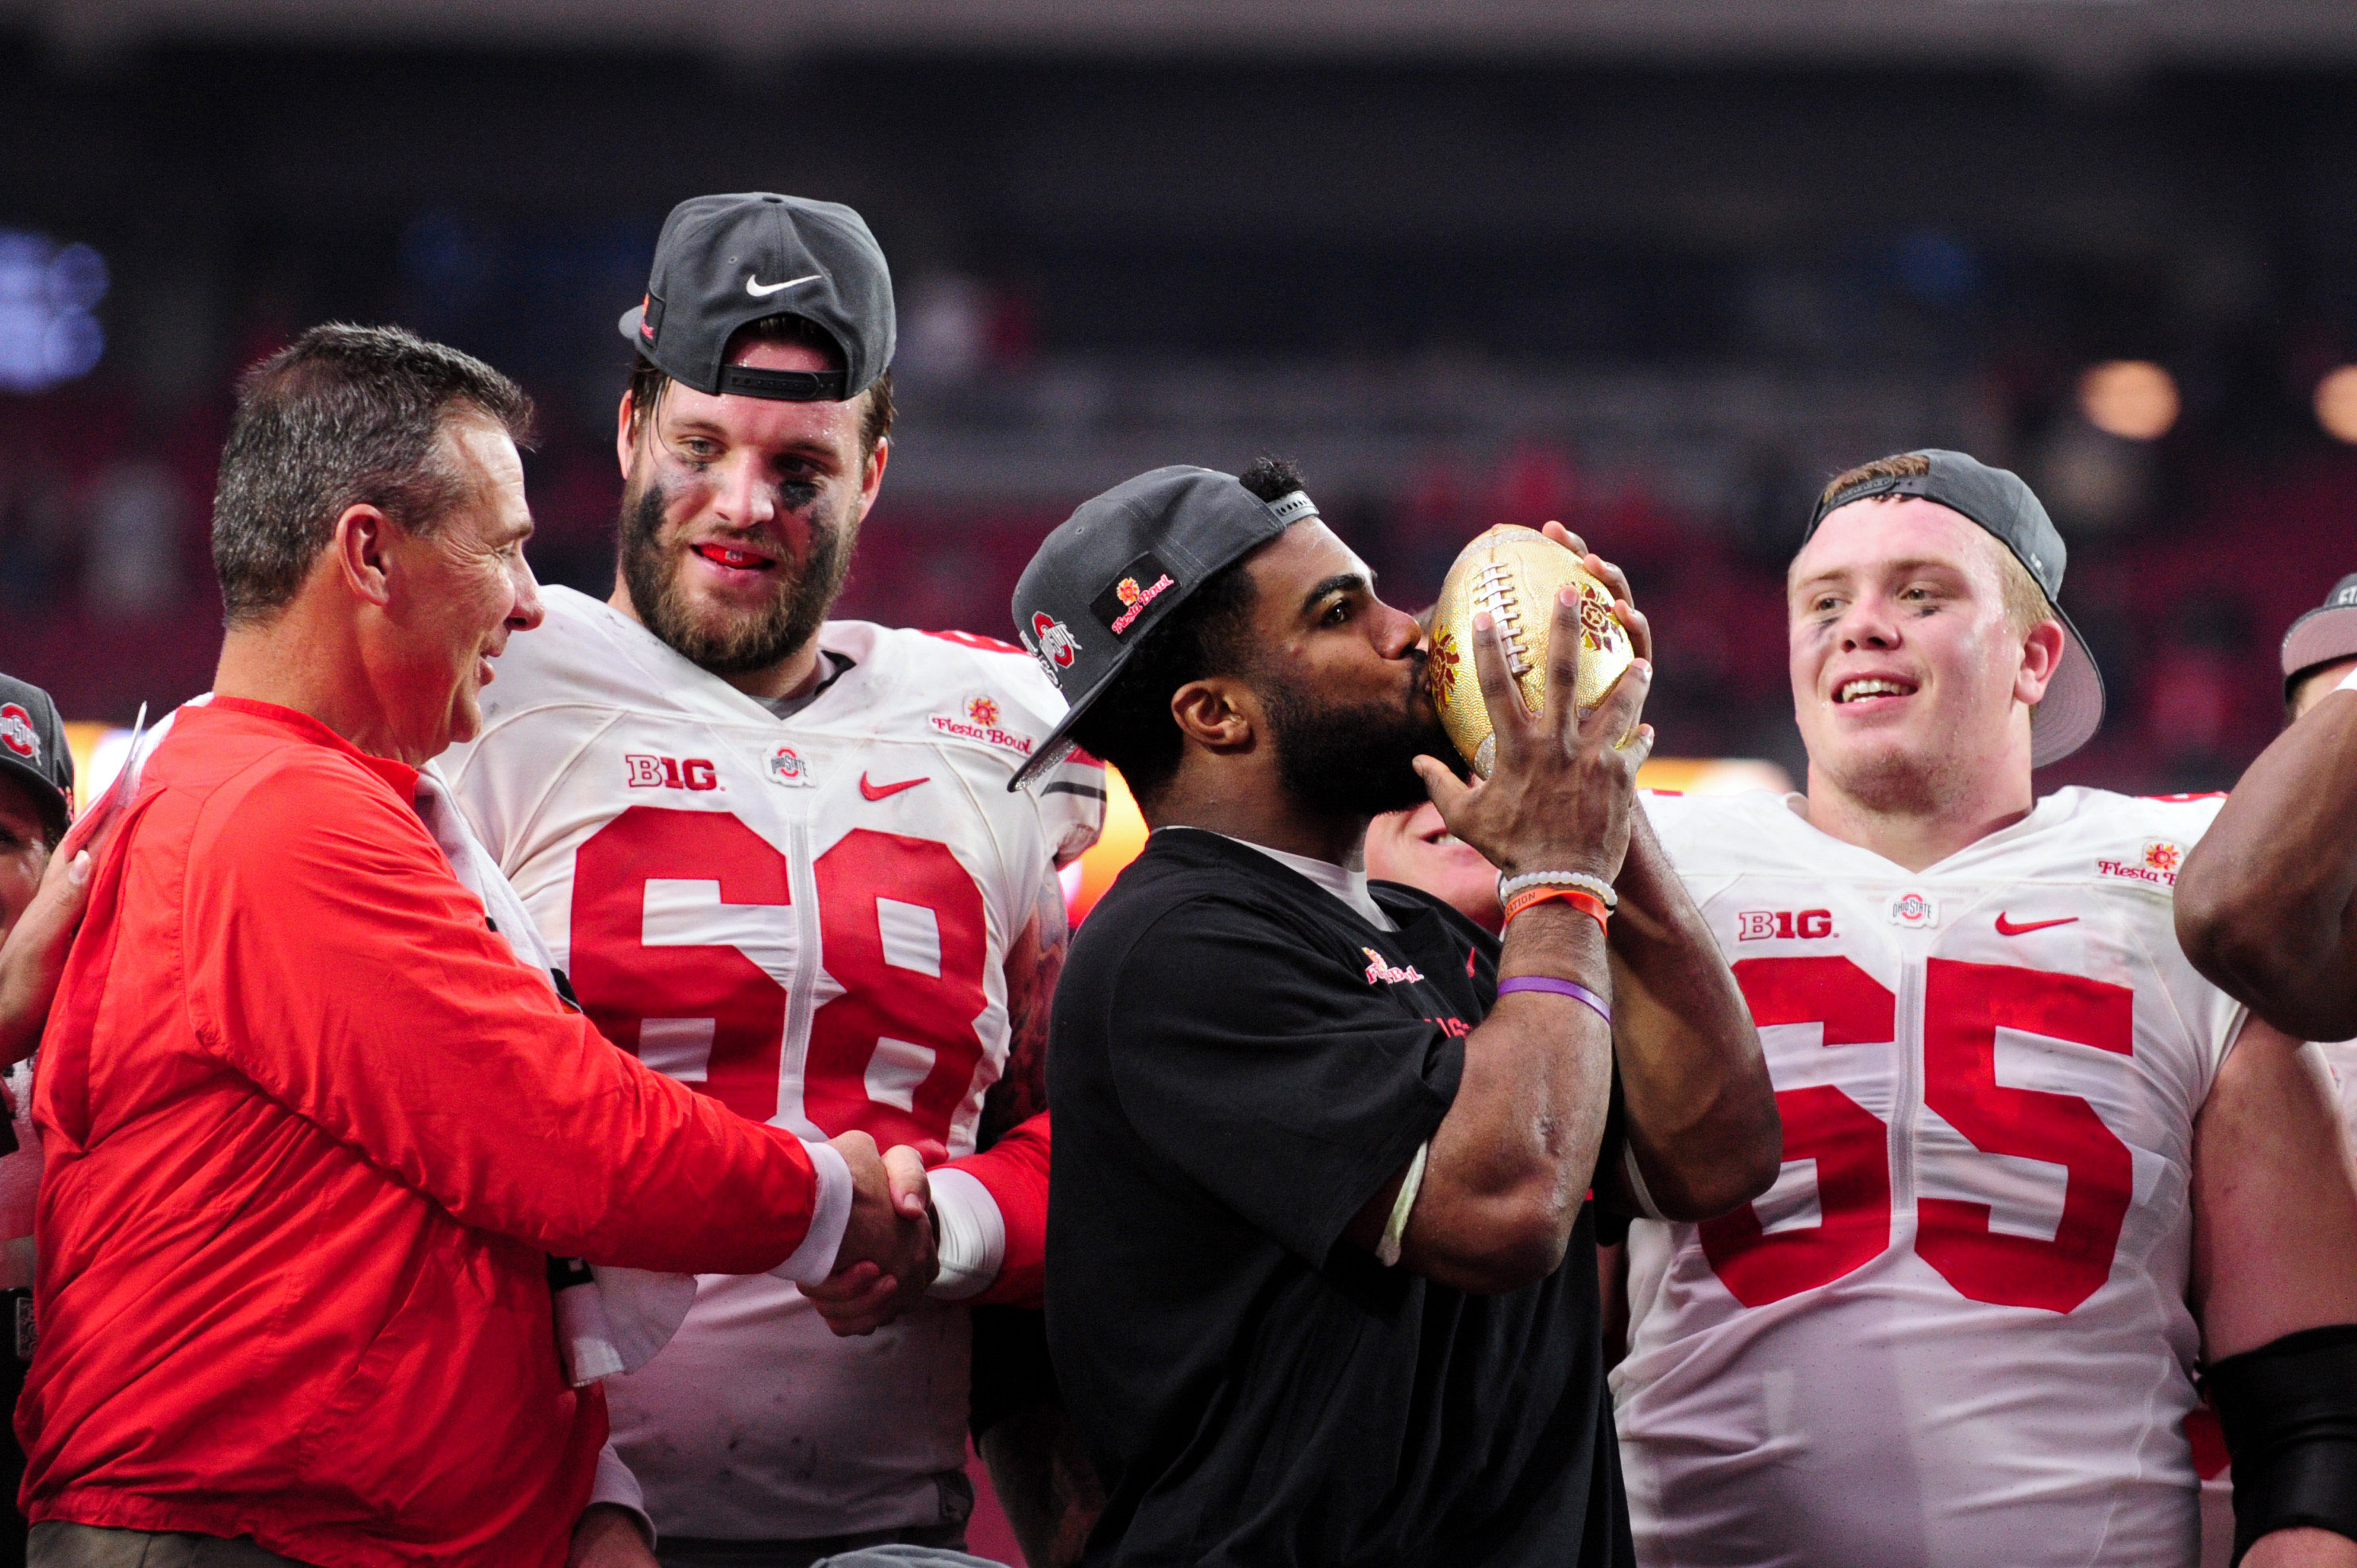 Jan 1, 2016; Glendale, AZ, USA; Ohio State Buckeyes head coach Urban Meyer celebrates with offensive lineman Taylor Decker (68), running back Ezekiel Elliott (15) and offensive lineman Pat Elflein (65) after beating the Notre Dame Fighting Irish 44-28 in the 2016 Fiesta Bowl at University of Phoenix Stadium. Mandatory Credit: Matt Kartozian-USA TODAY Sports